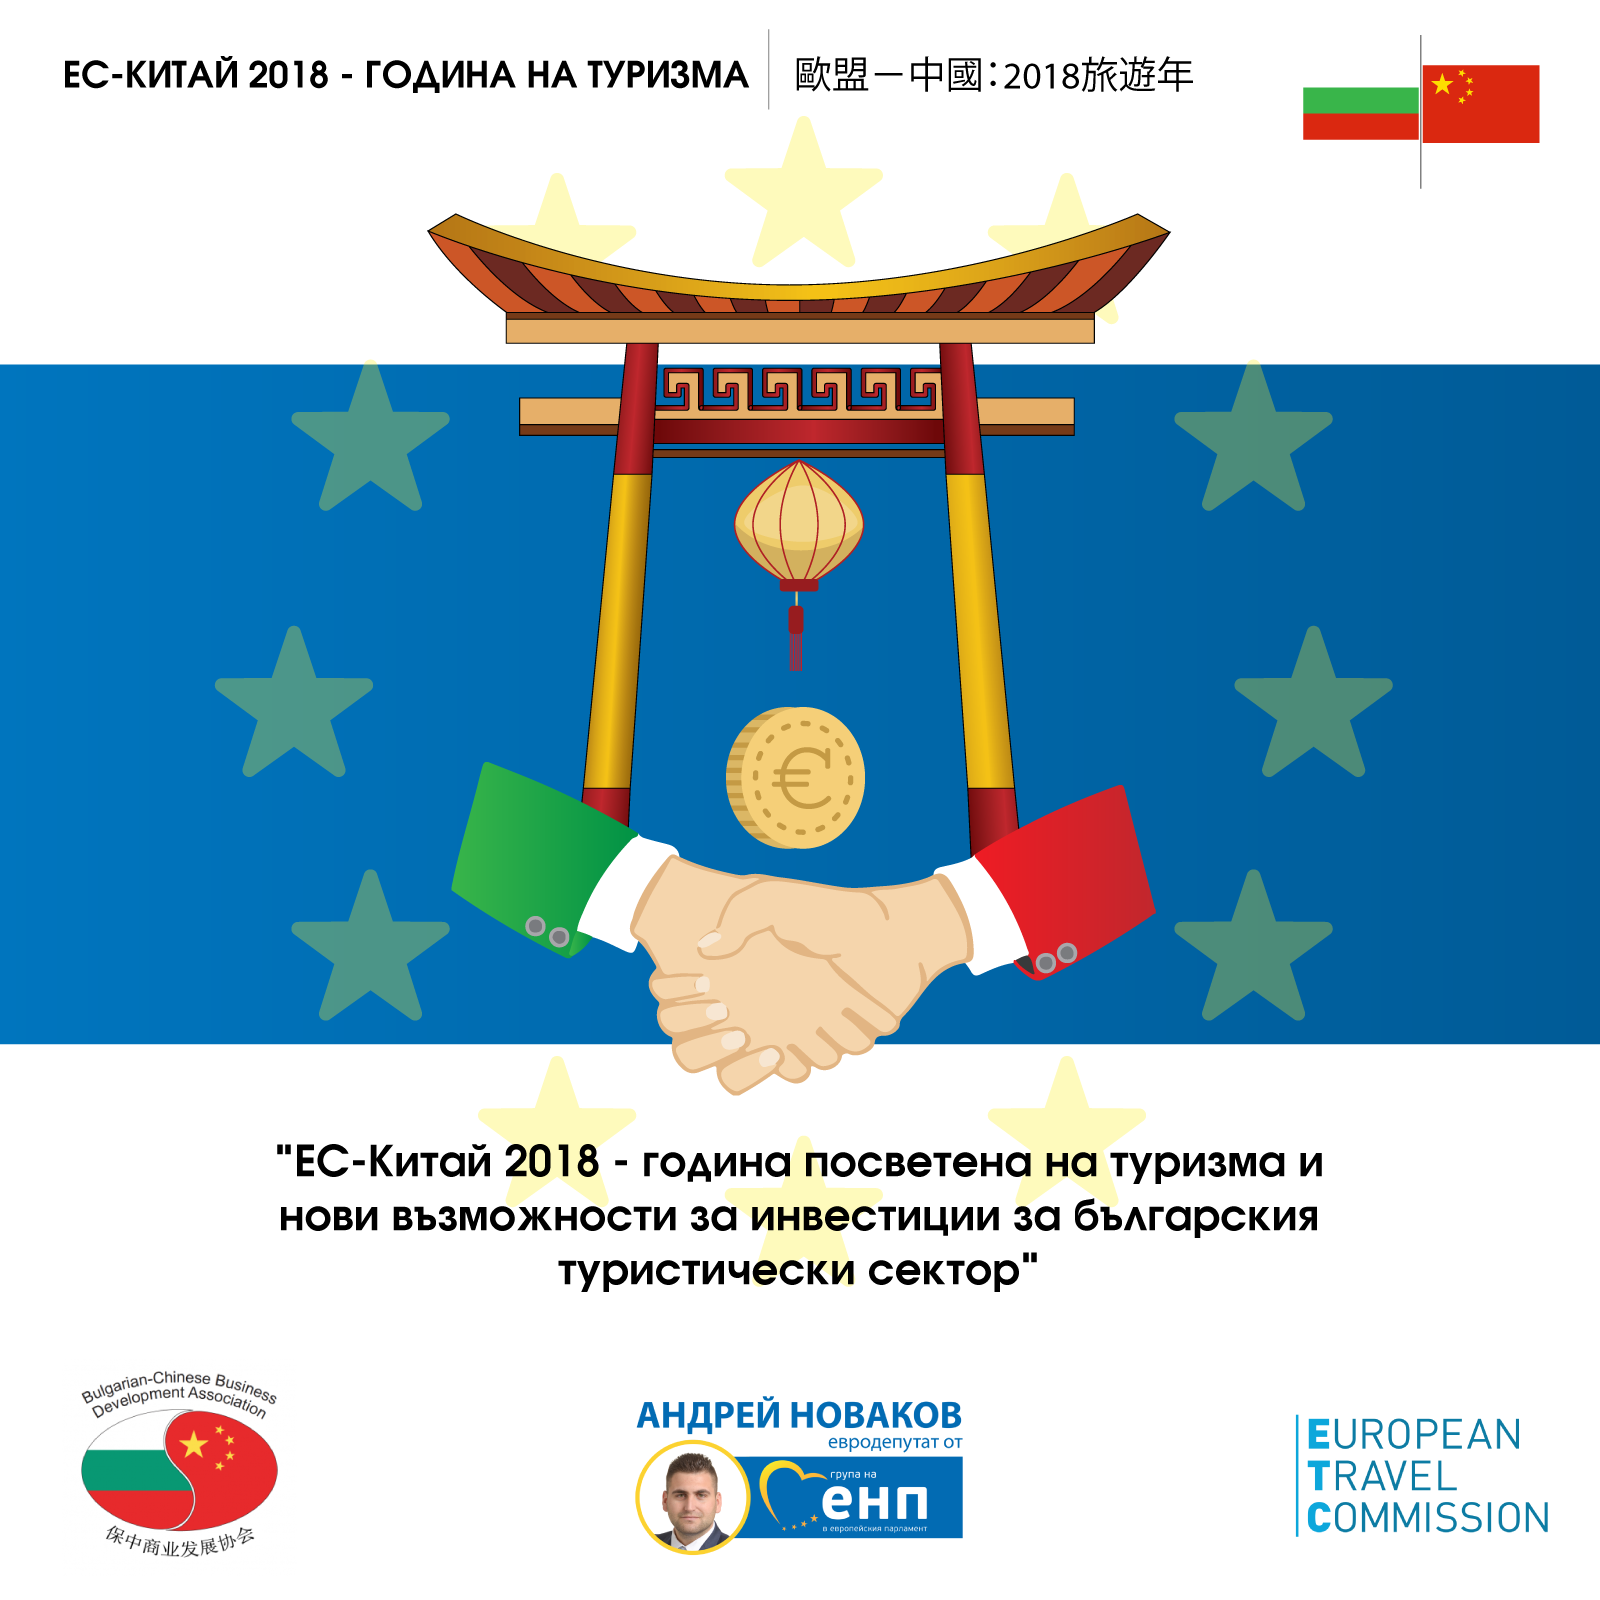 The EU-China Tourism Year 2018